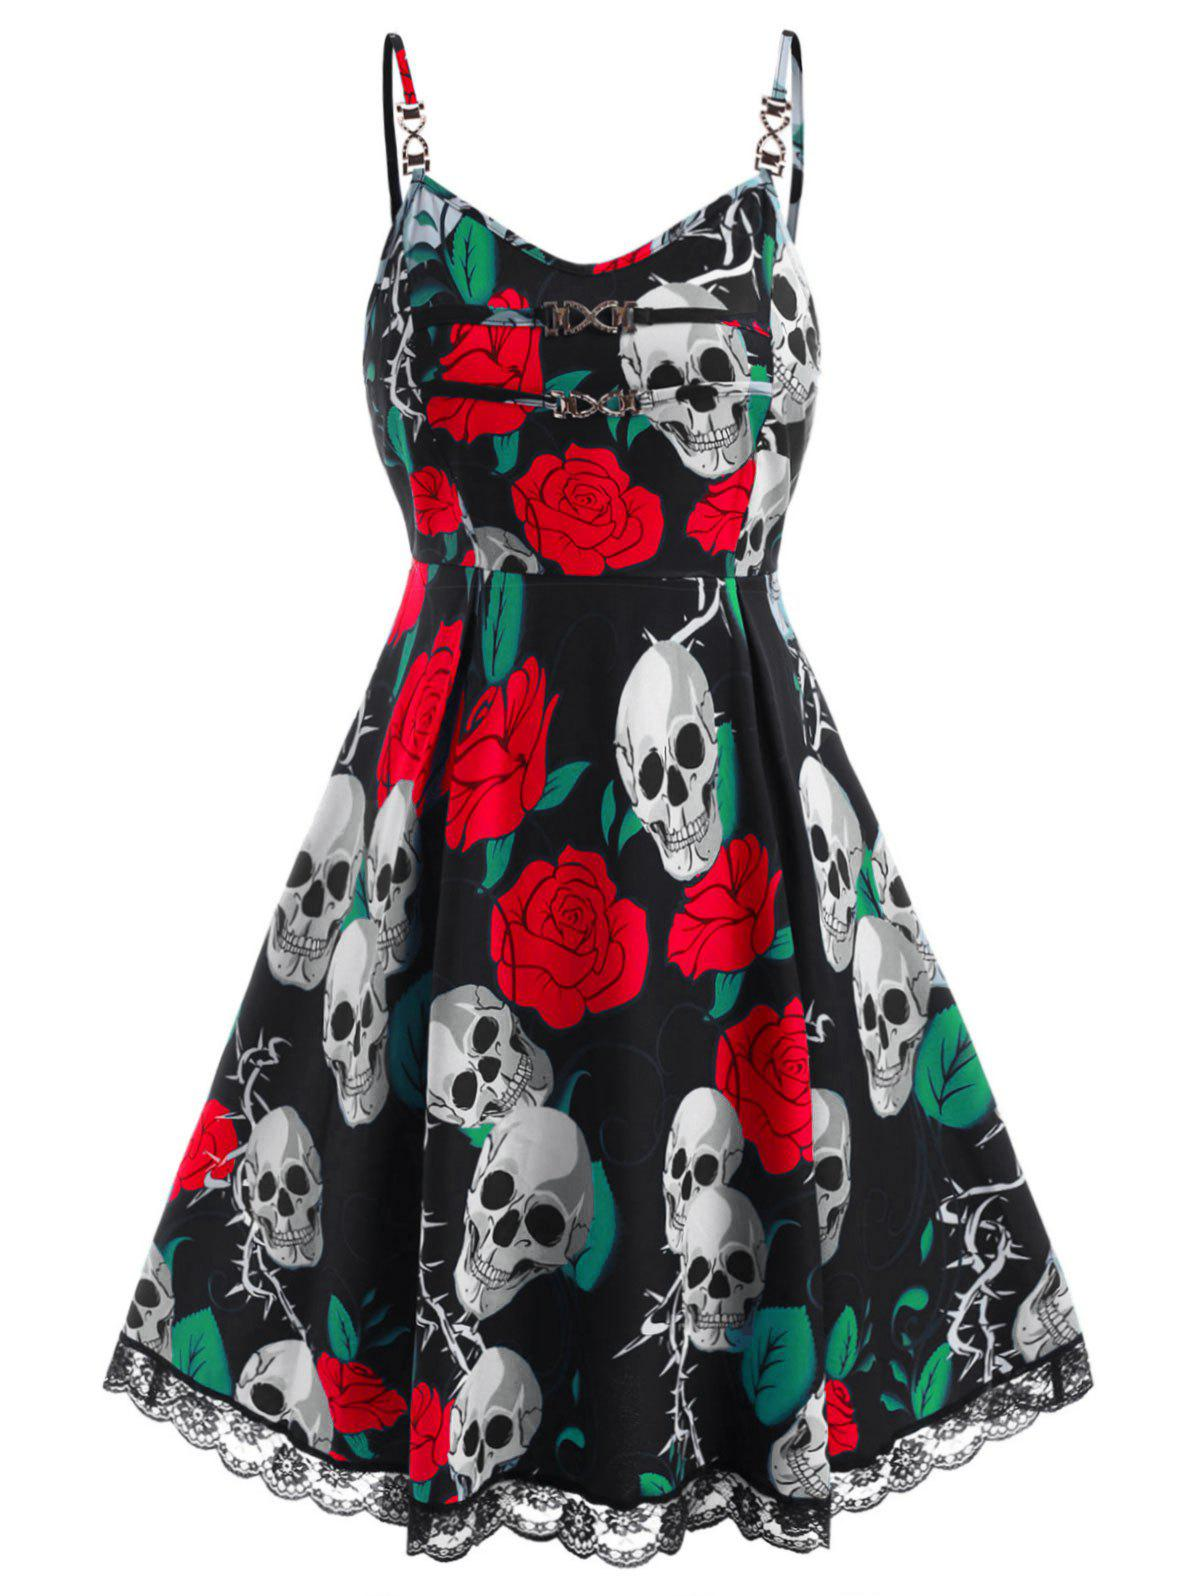 Chains Lace Trim Rose Skull Halloween Plus Size Dress Rosegal